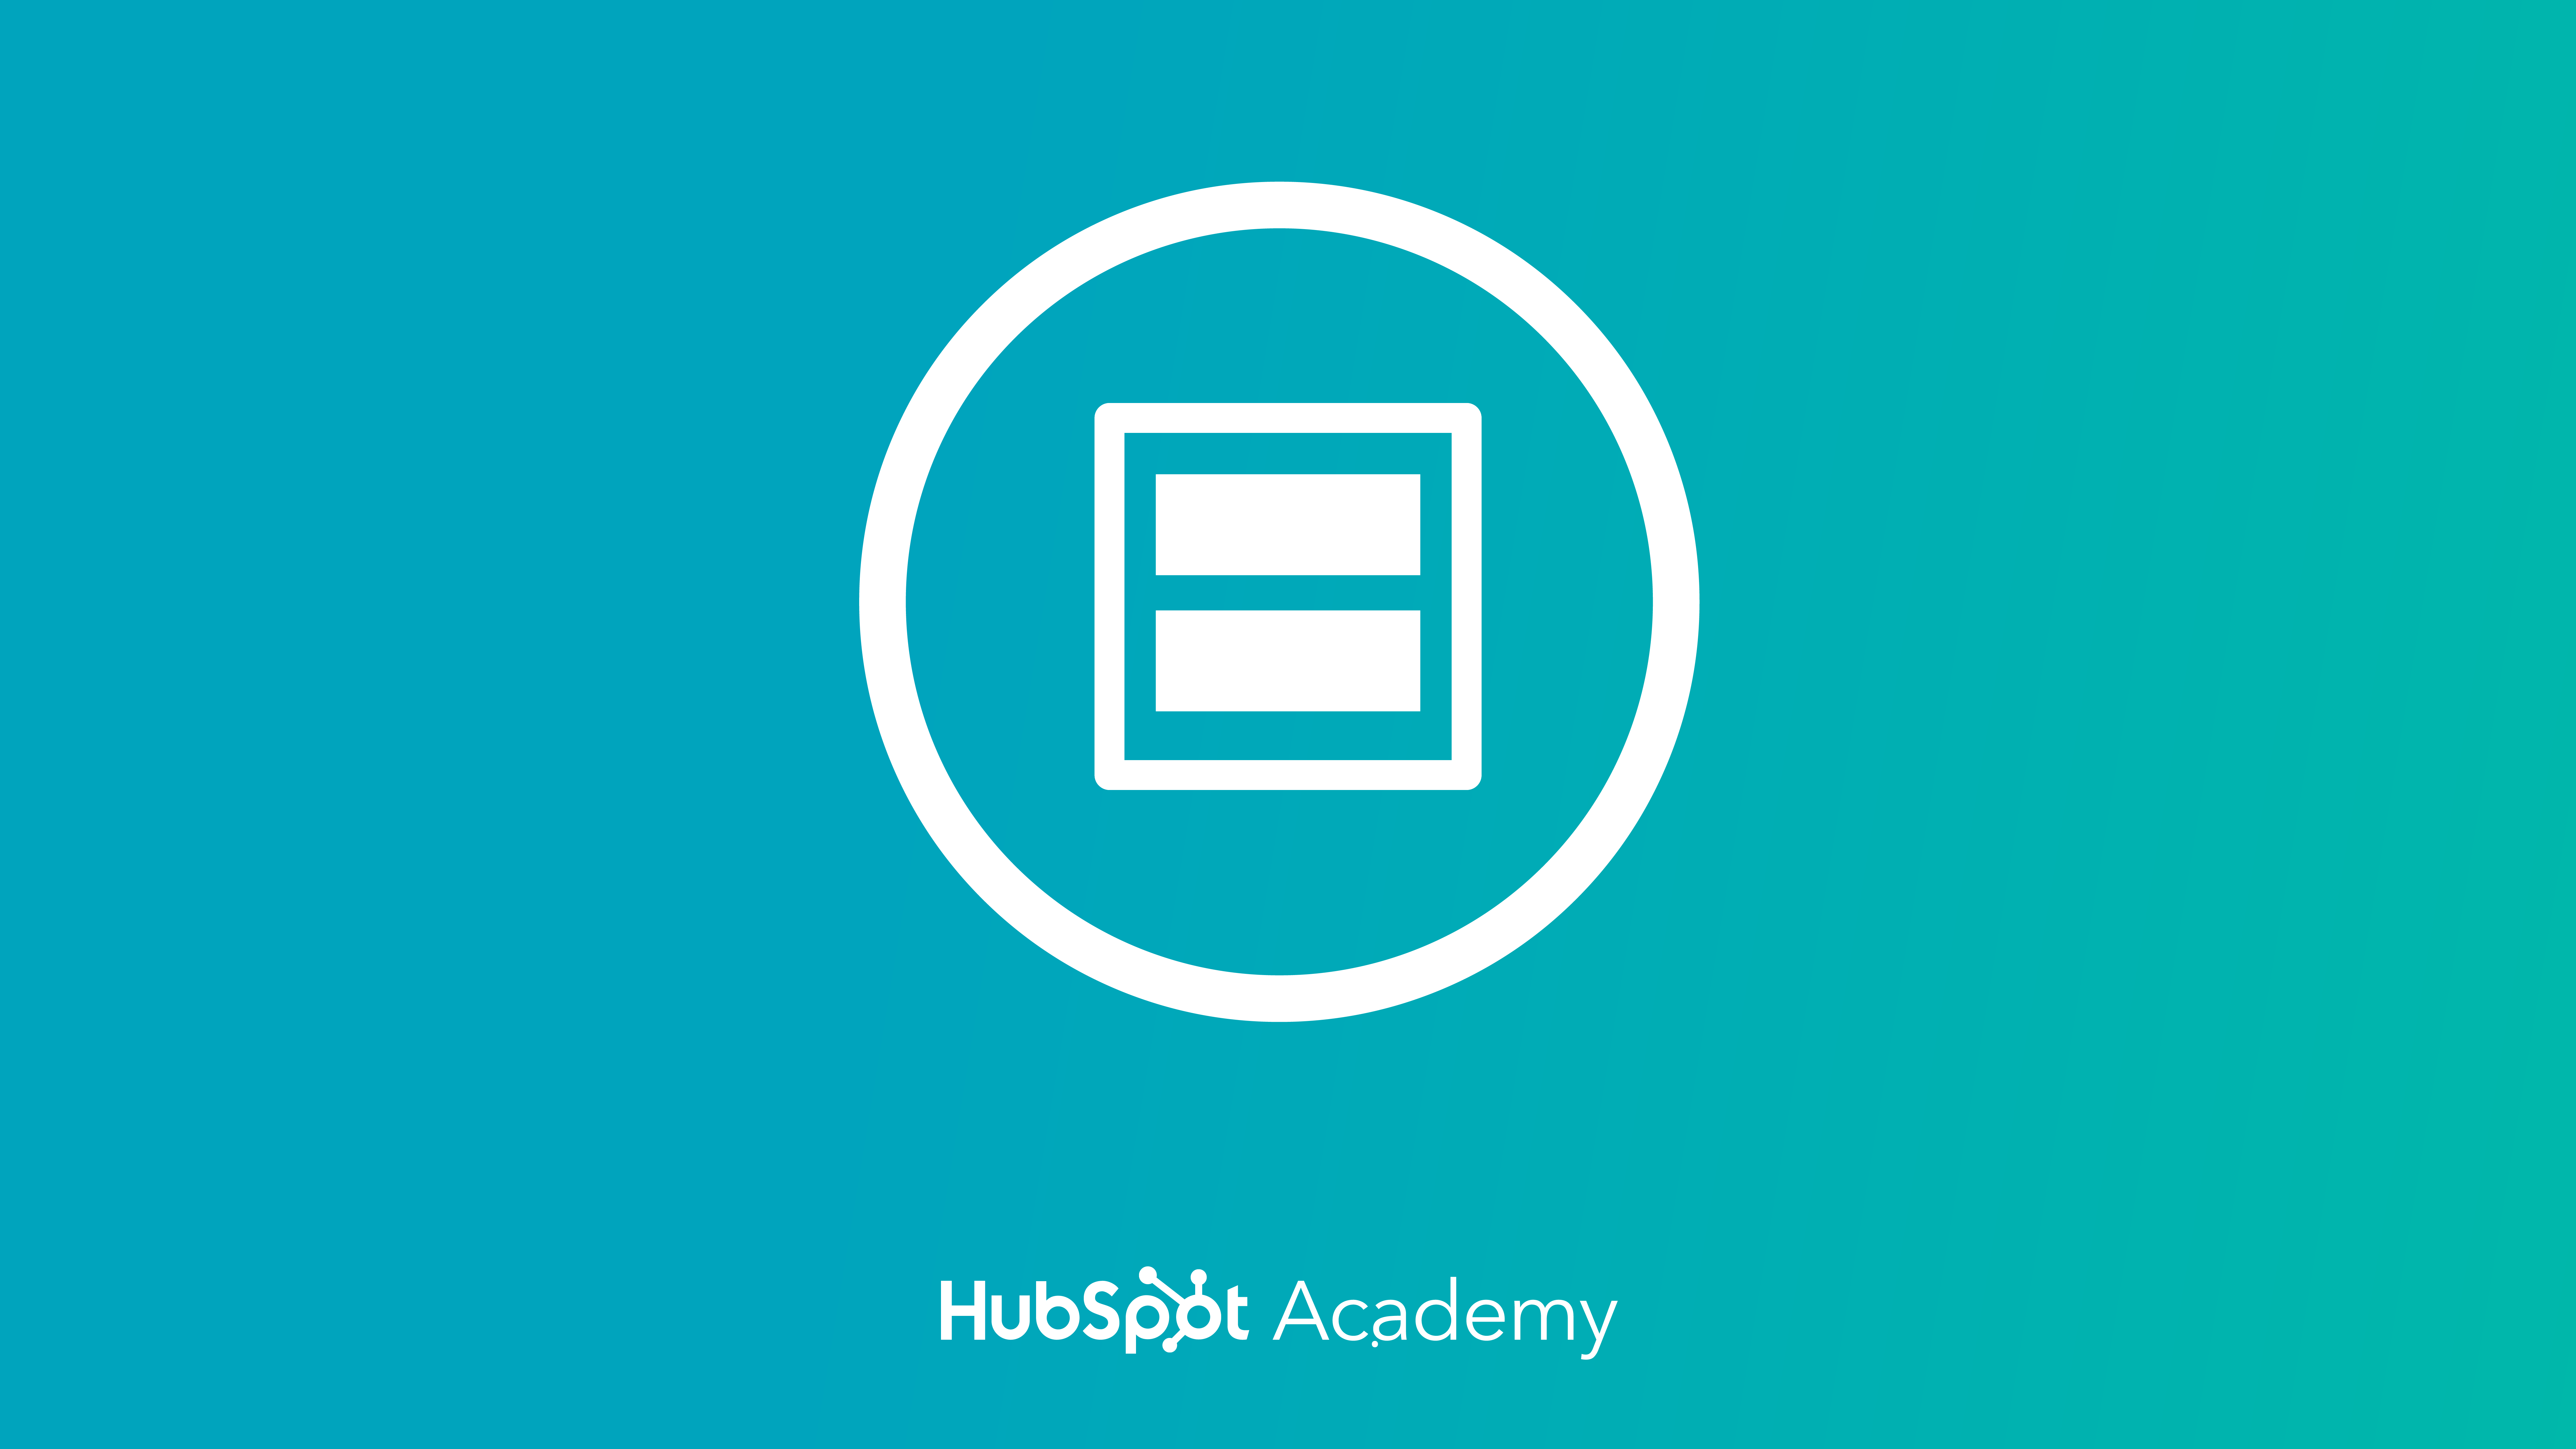 HubSpot Design Certification course by HubSpot Academy